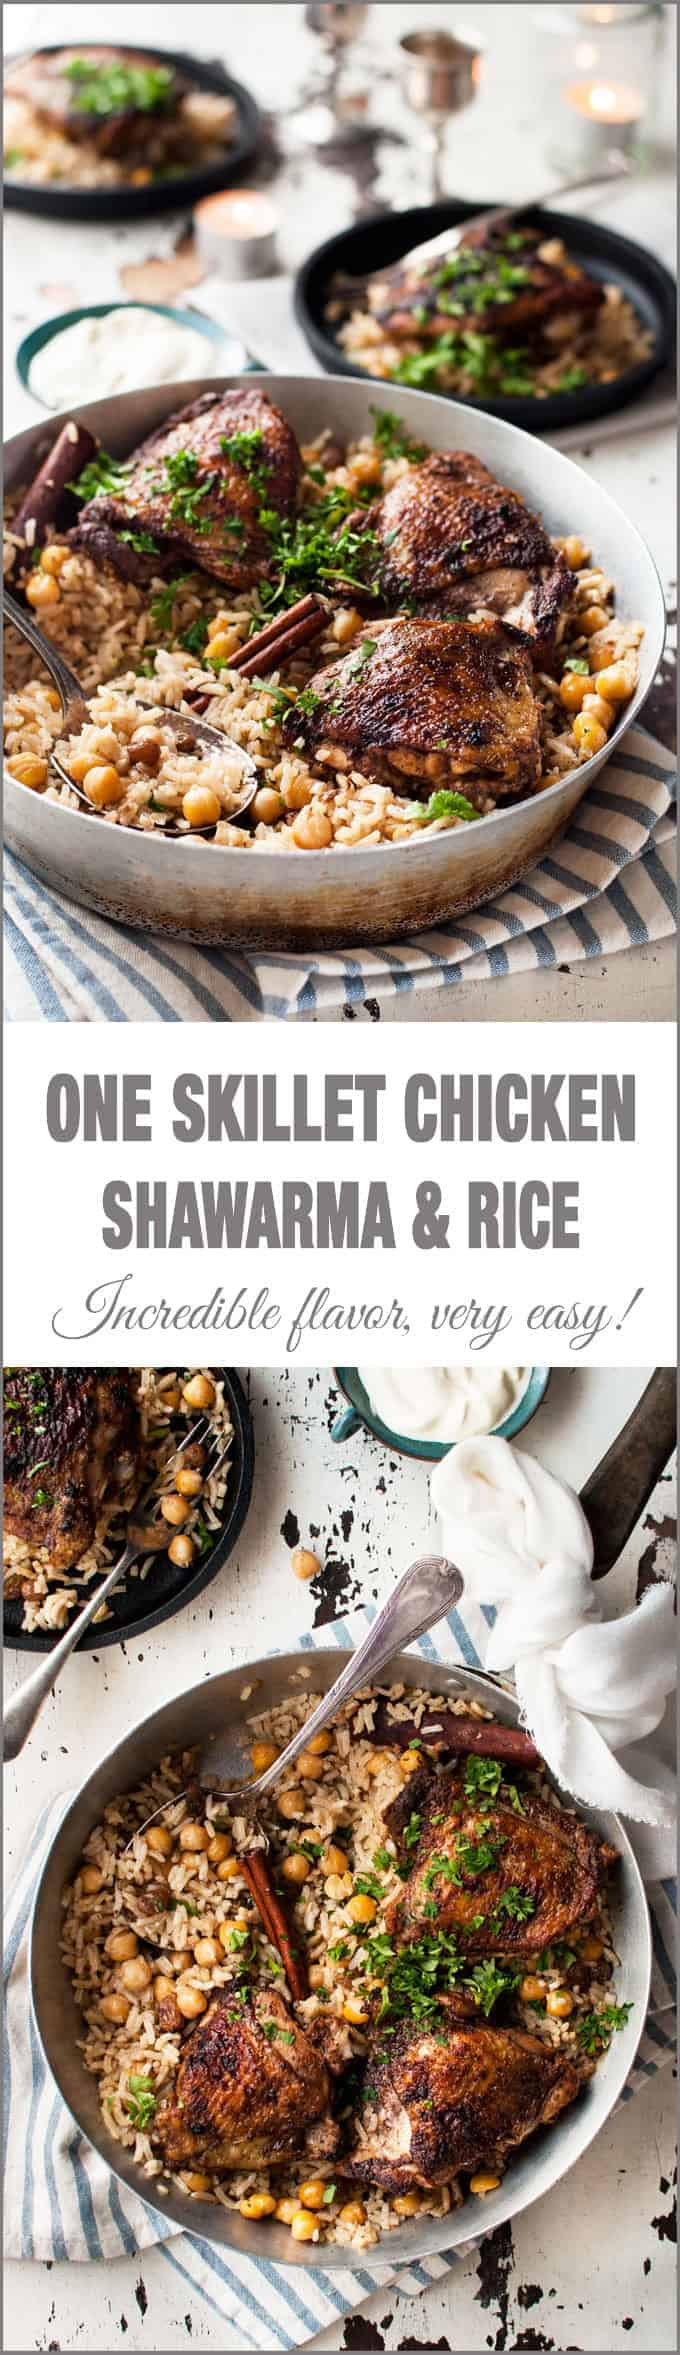 One Skillet Baked Chicken Shawarma and Rice - two Middle Eastern favorites made in one skillet! Chicken Shawarma with punchy flavours and a delicately fragrant rice pilaf with chickpeas.